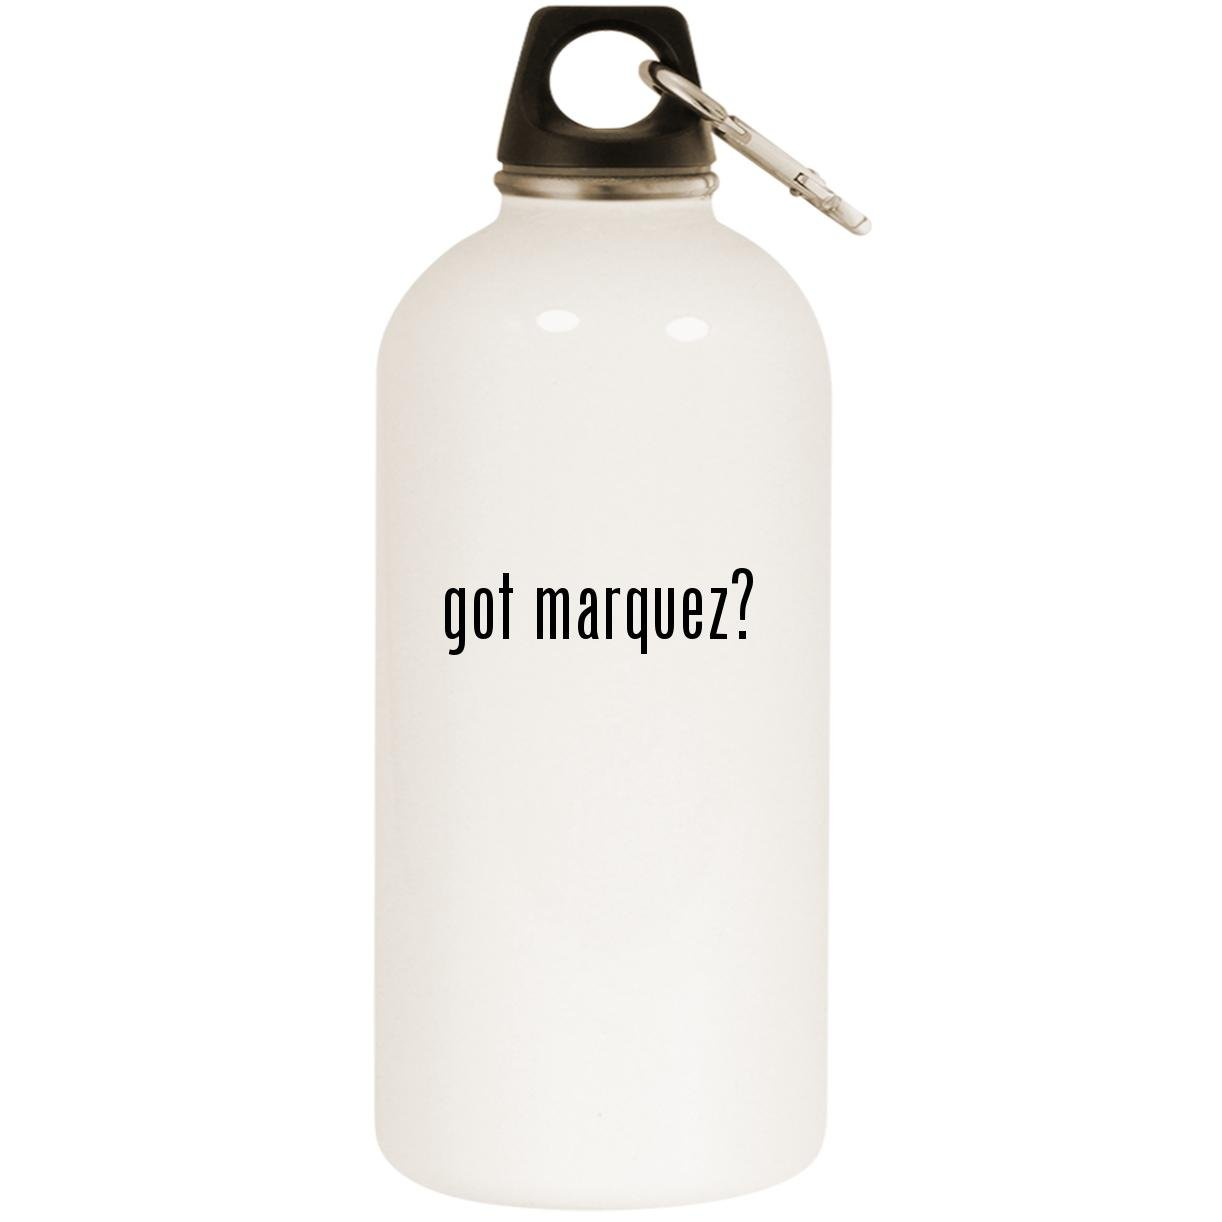 got marquez? - White 20oz Stainless Steel Water Bottle with Carabiner